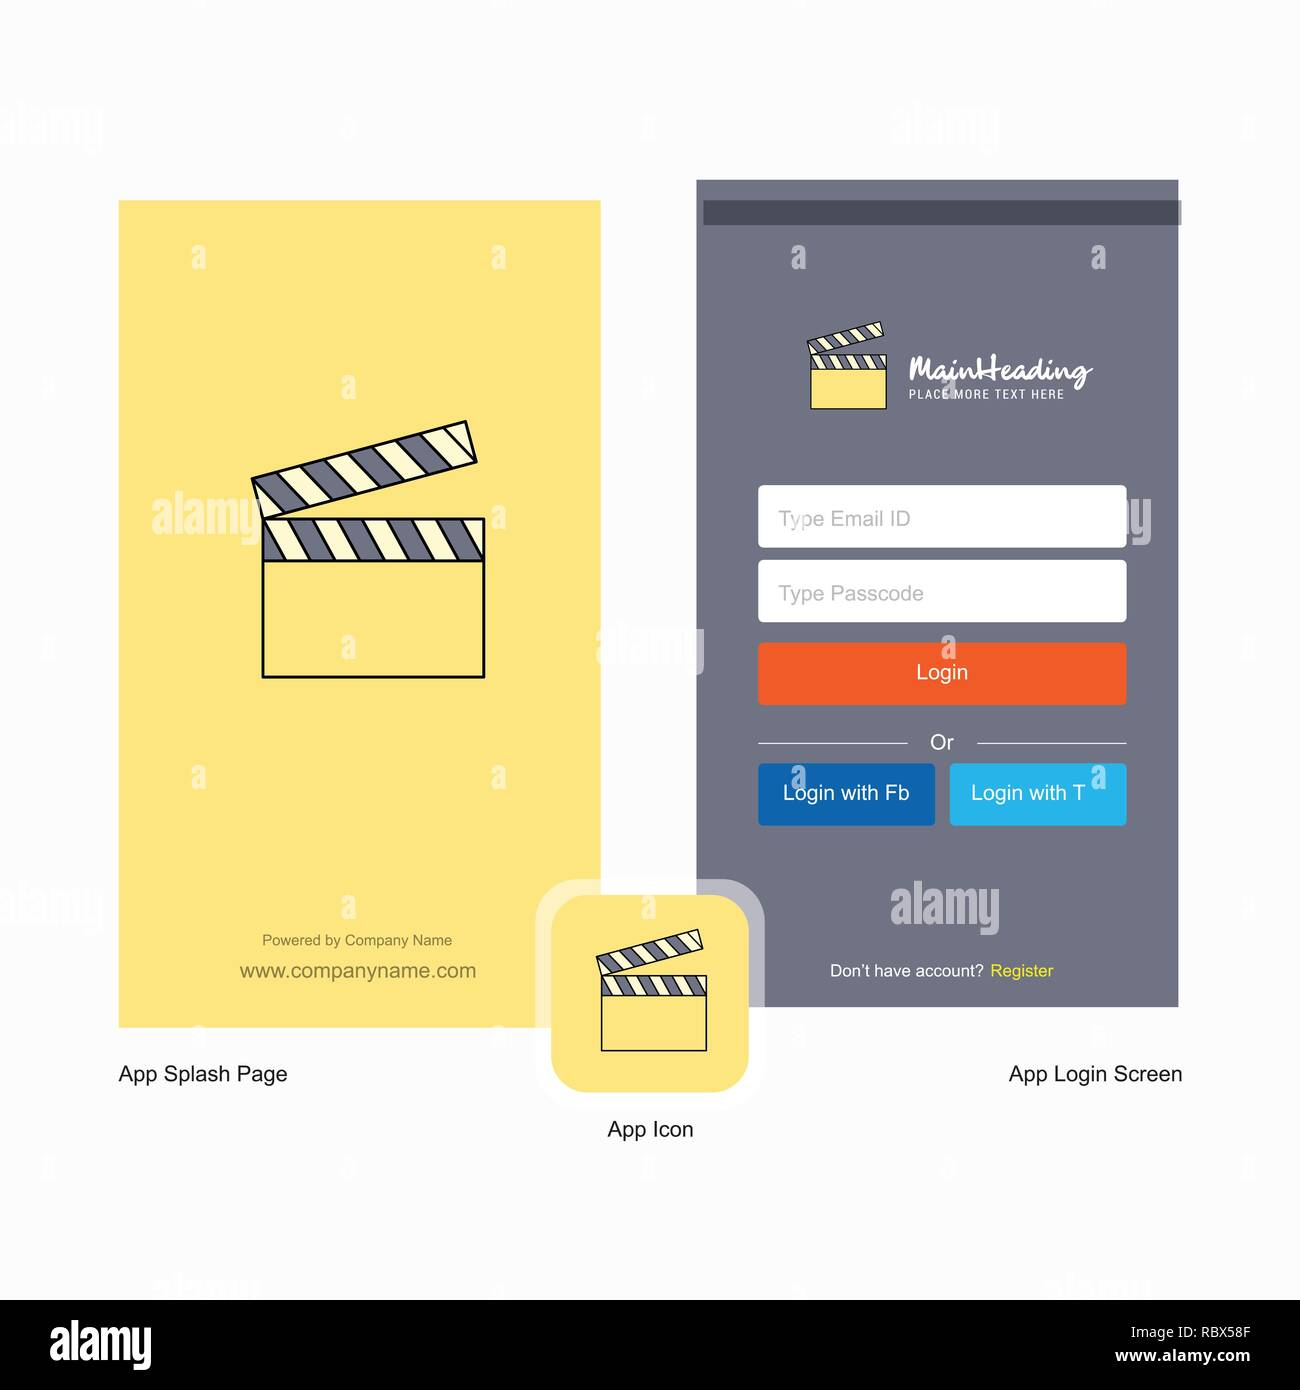 Company Movie clip Splash Screen and Login Page design with